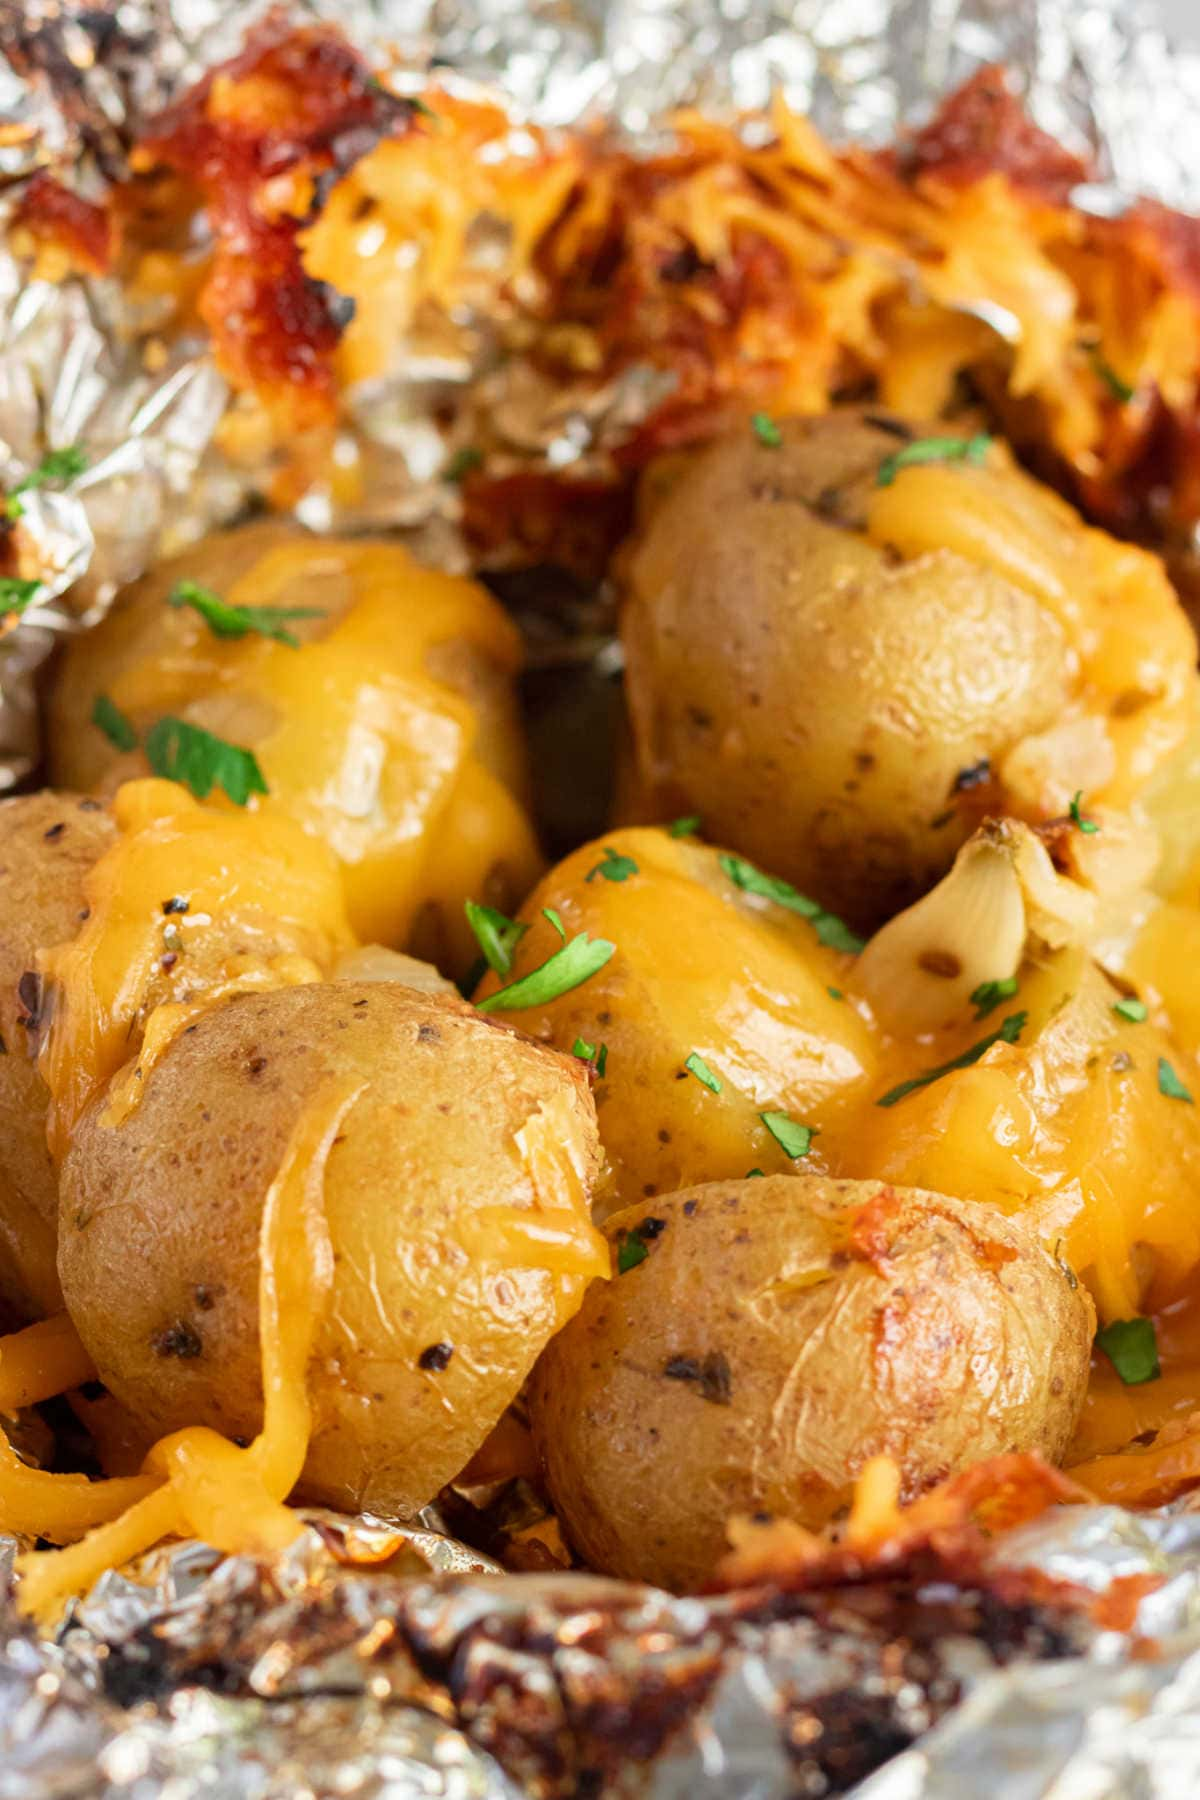 Open foil packet with cooked Yukon Gold potatoes inside.